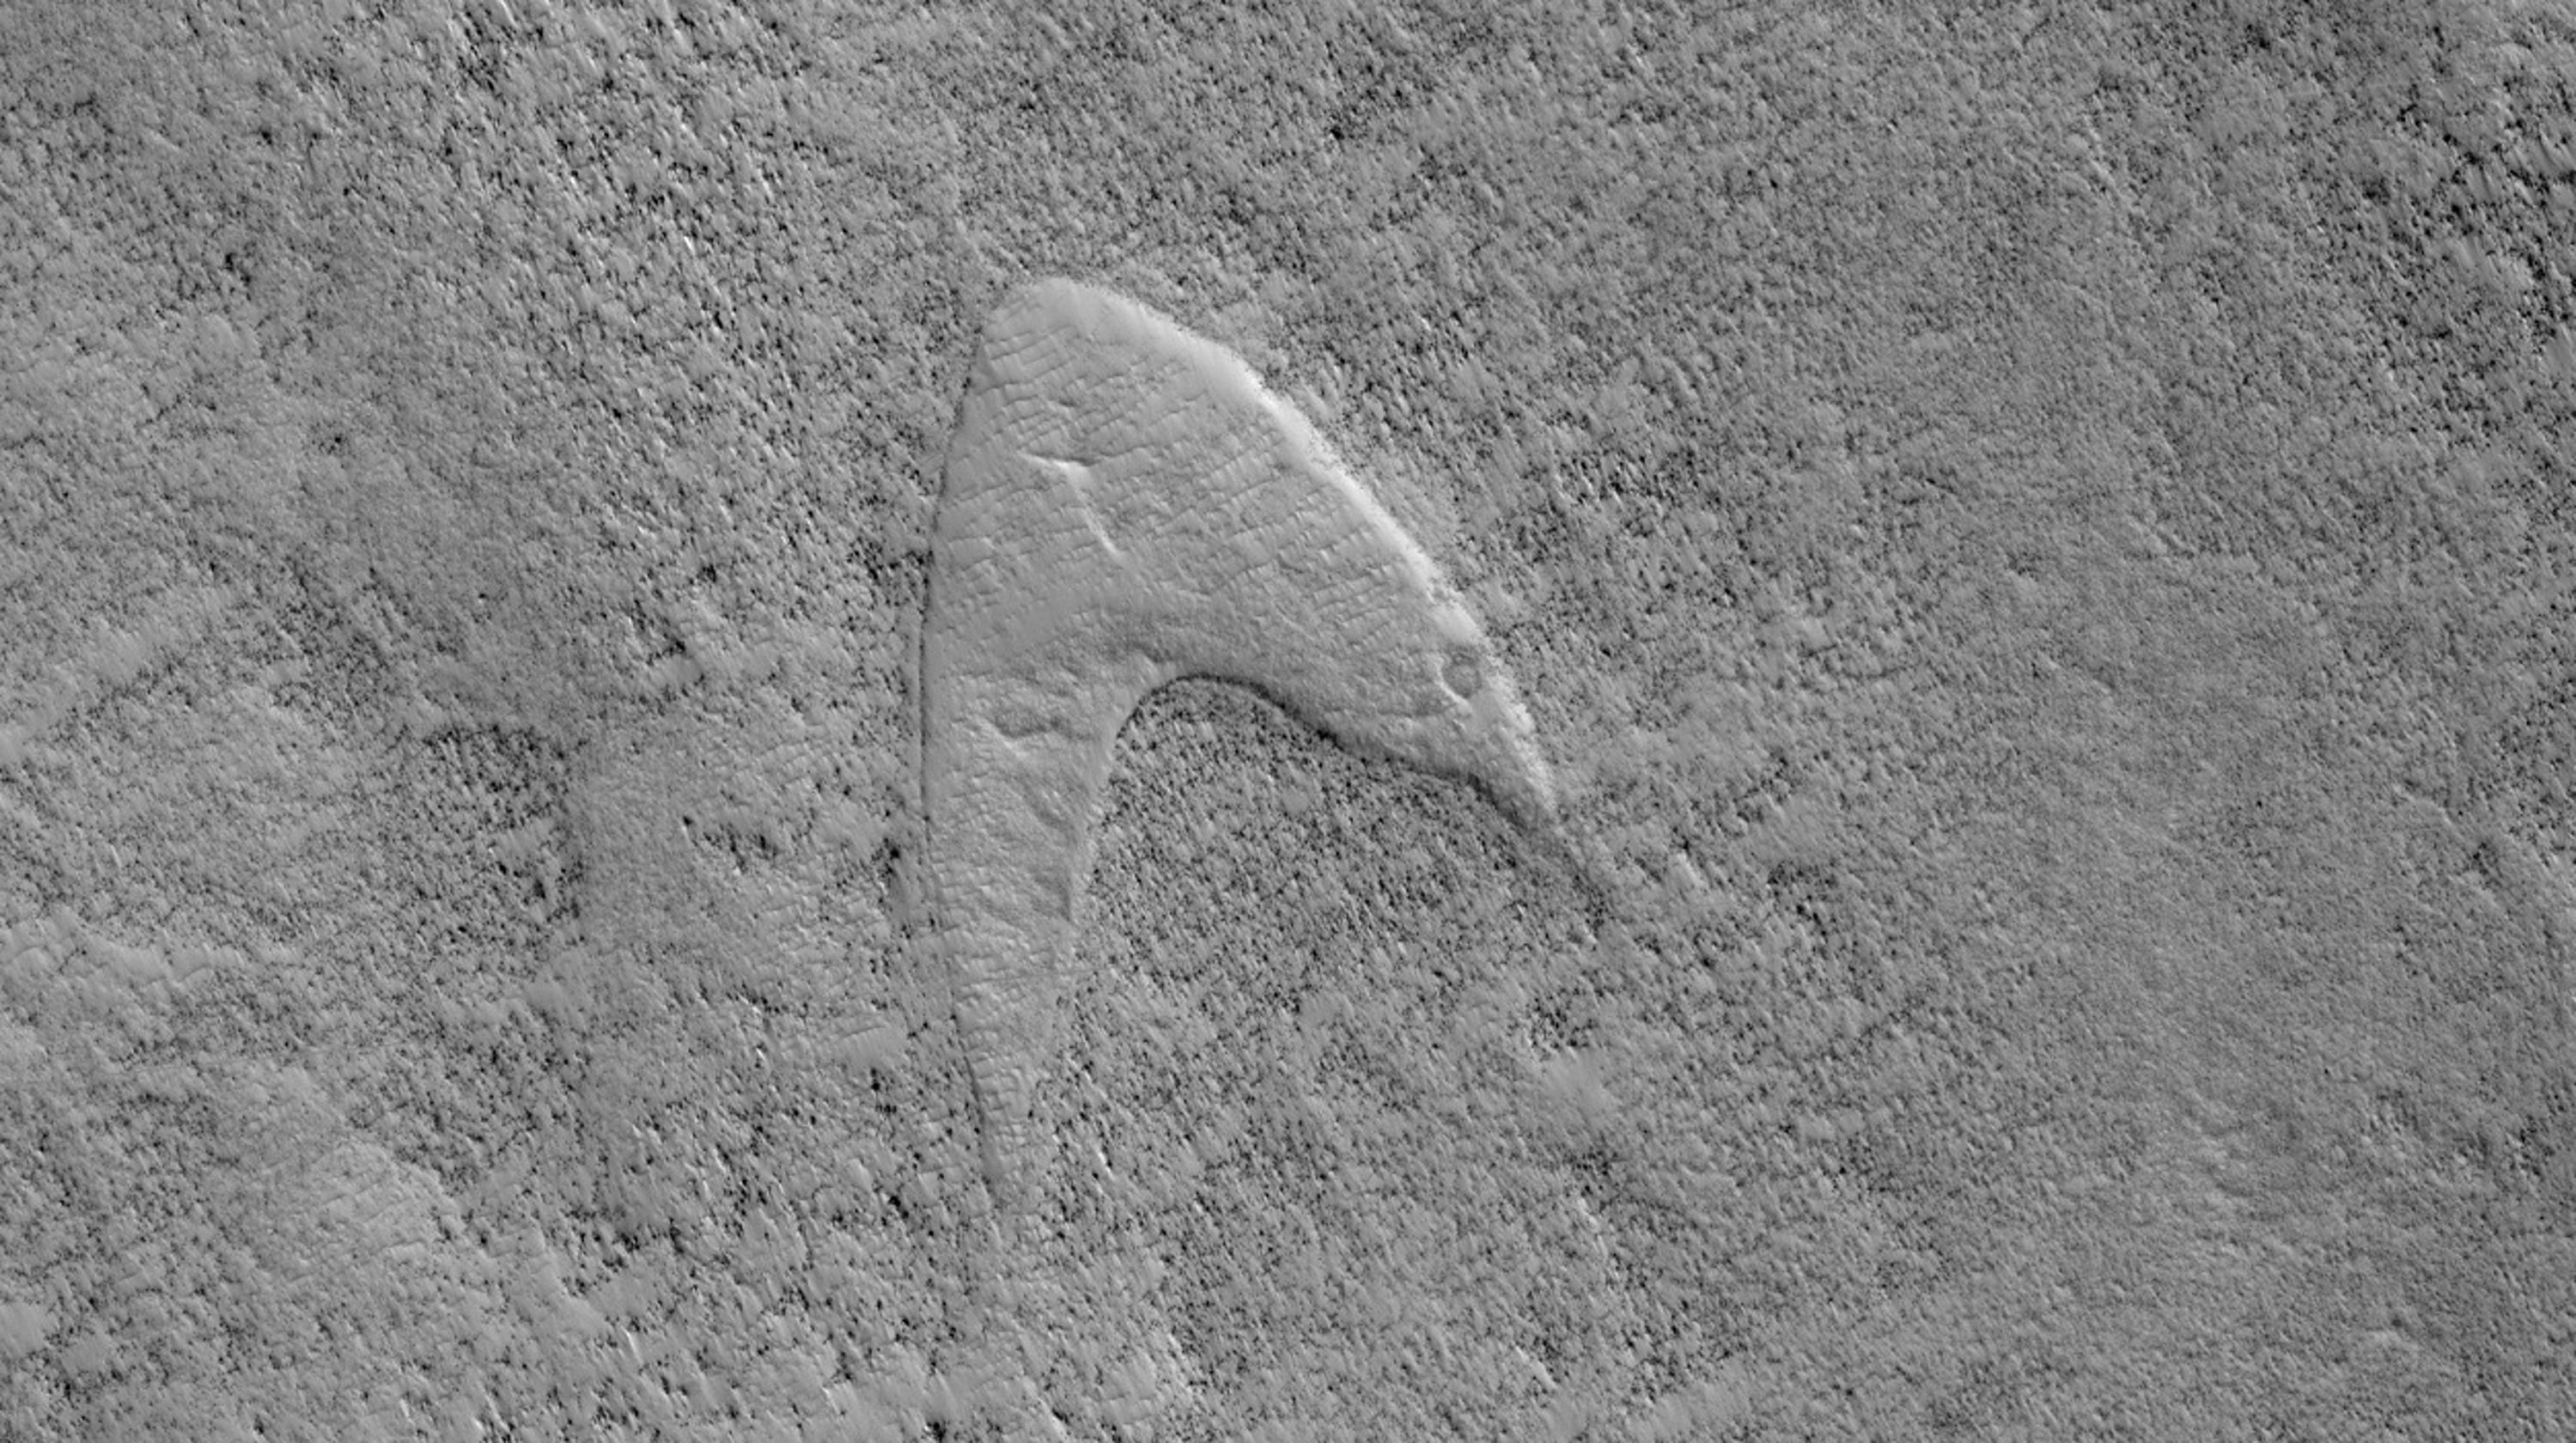 'Star Trek' logo - or at least, what looks like it - spotted on Mars